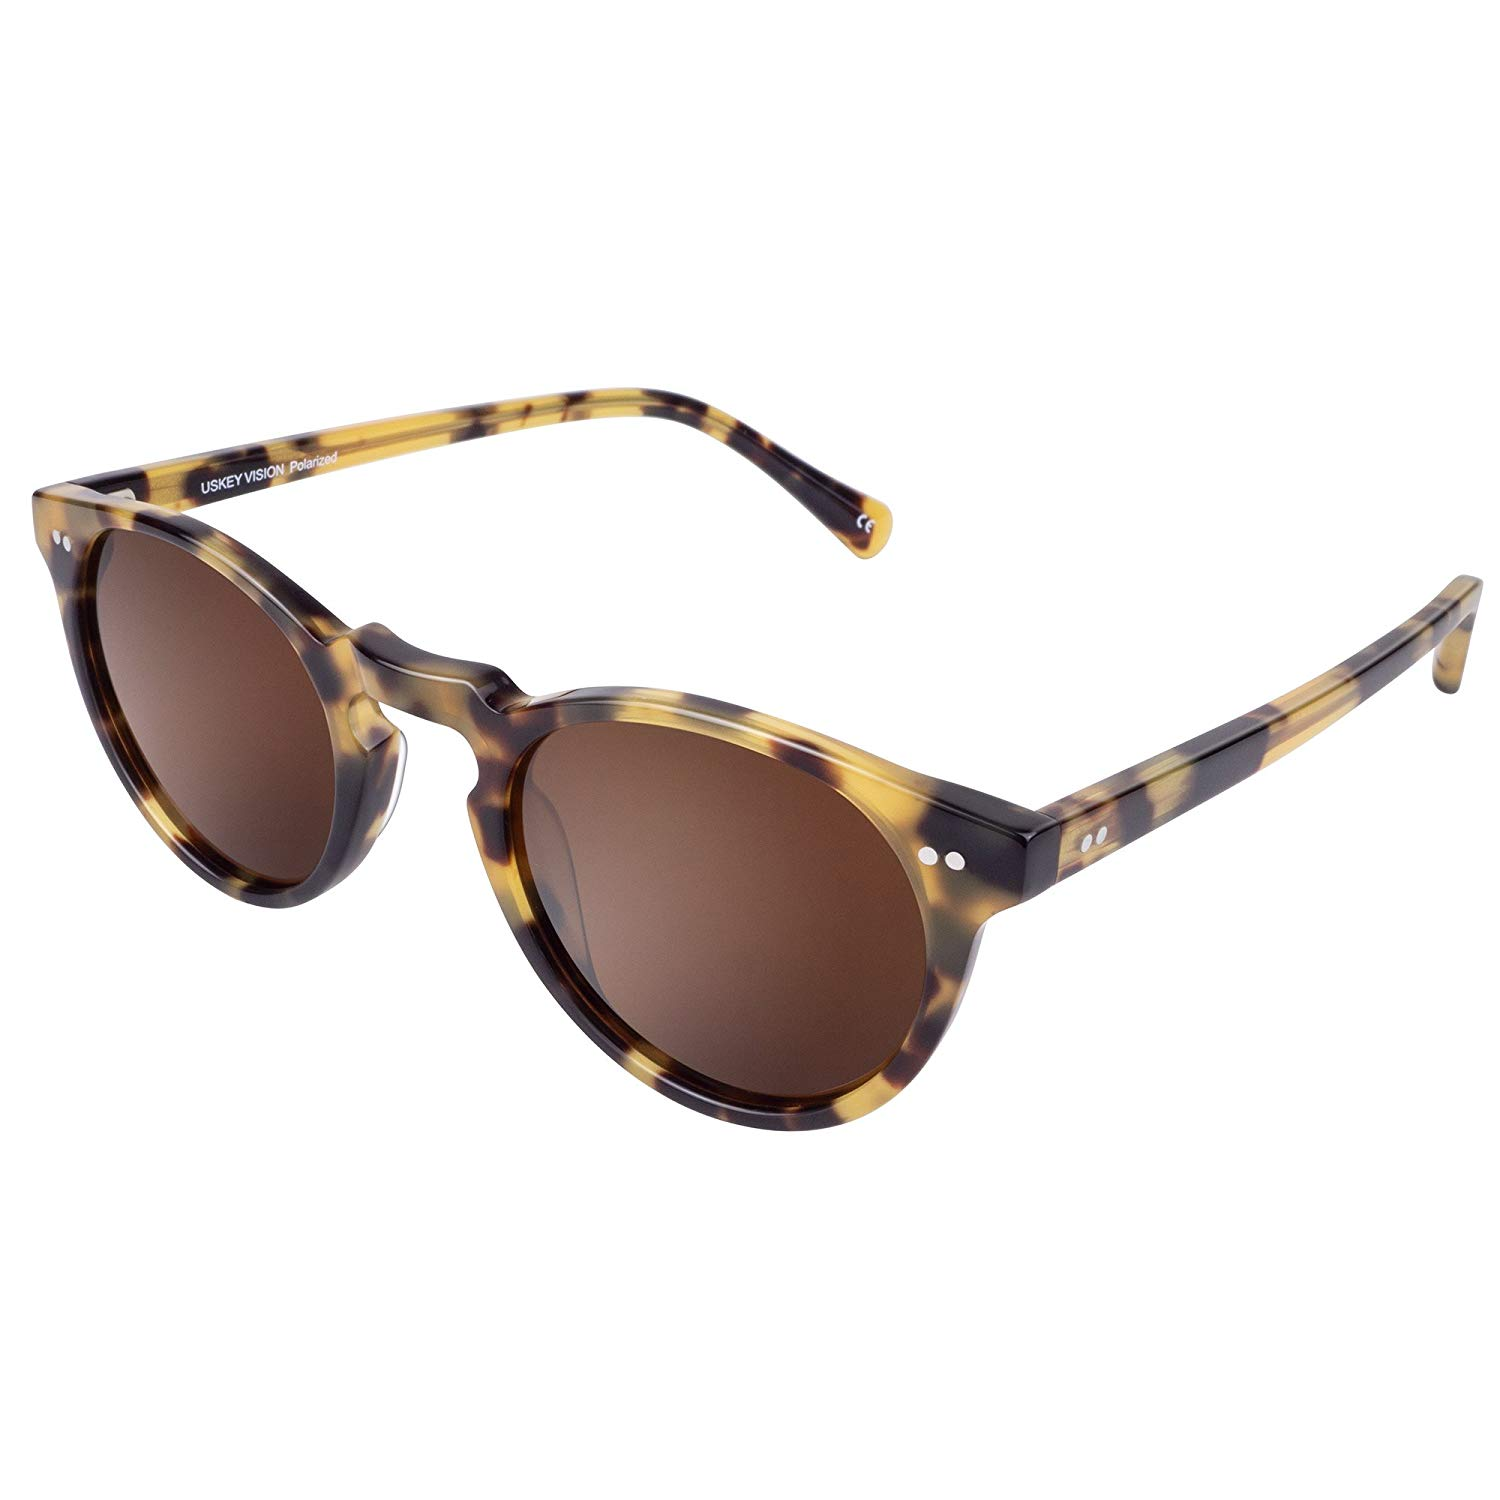 Cheap Uv Rating Sunglasses Find Uv Rating Sunglasses Deals On Line